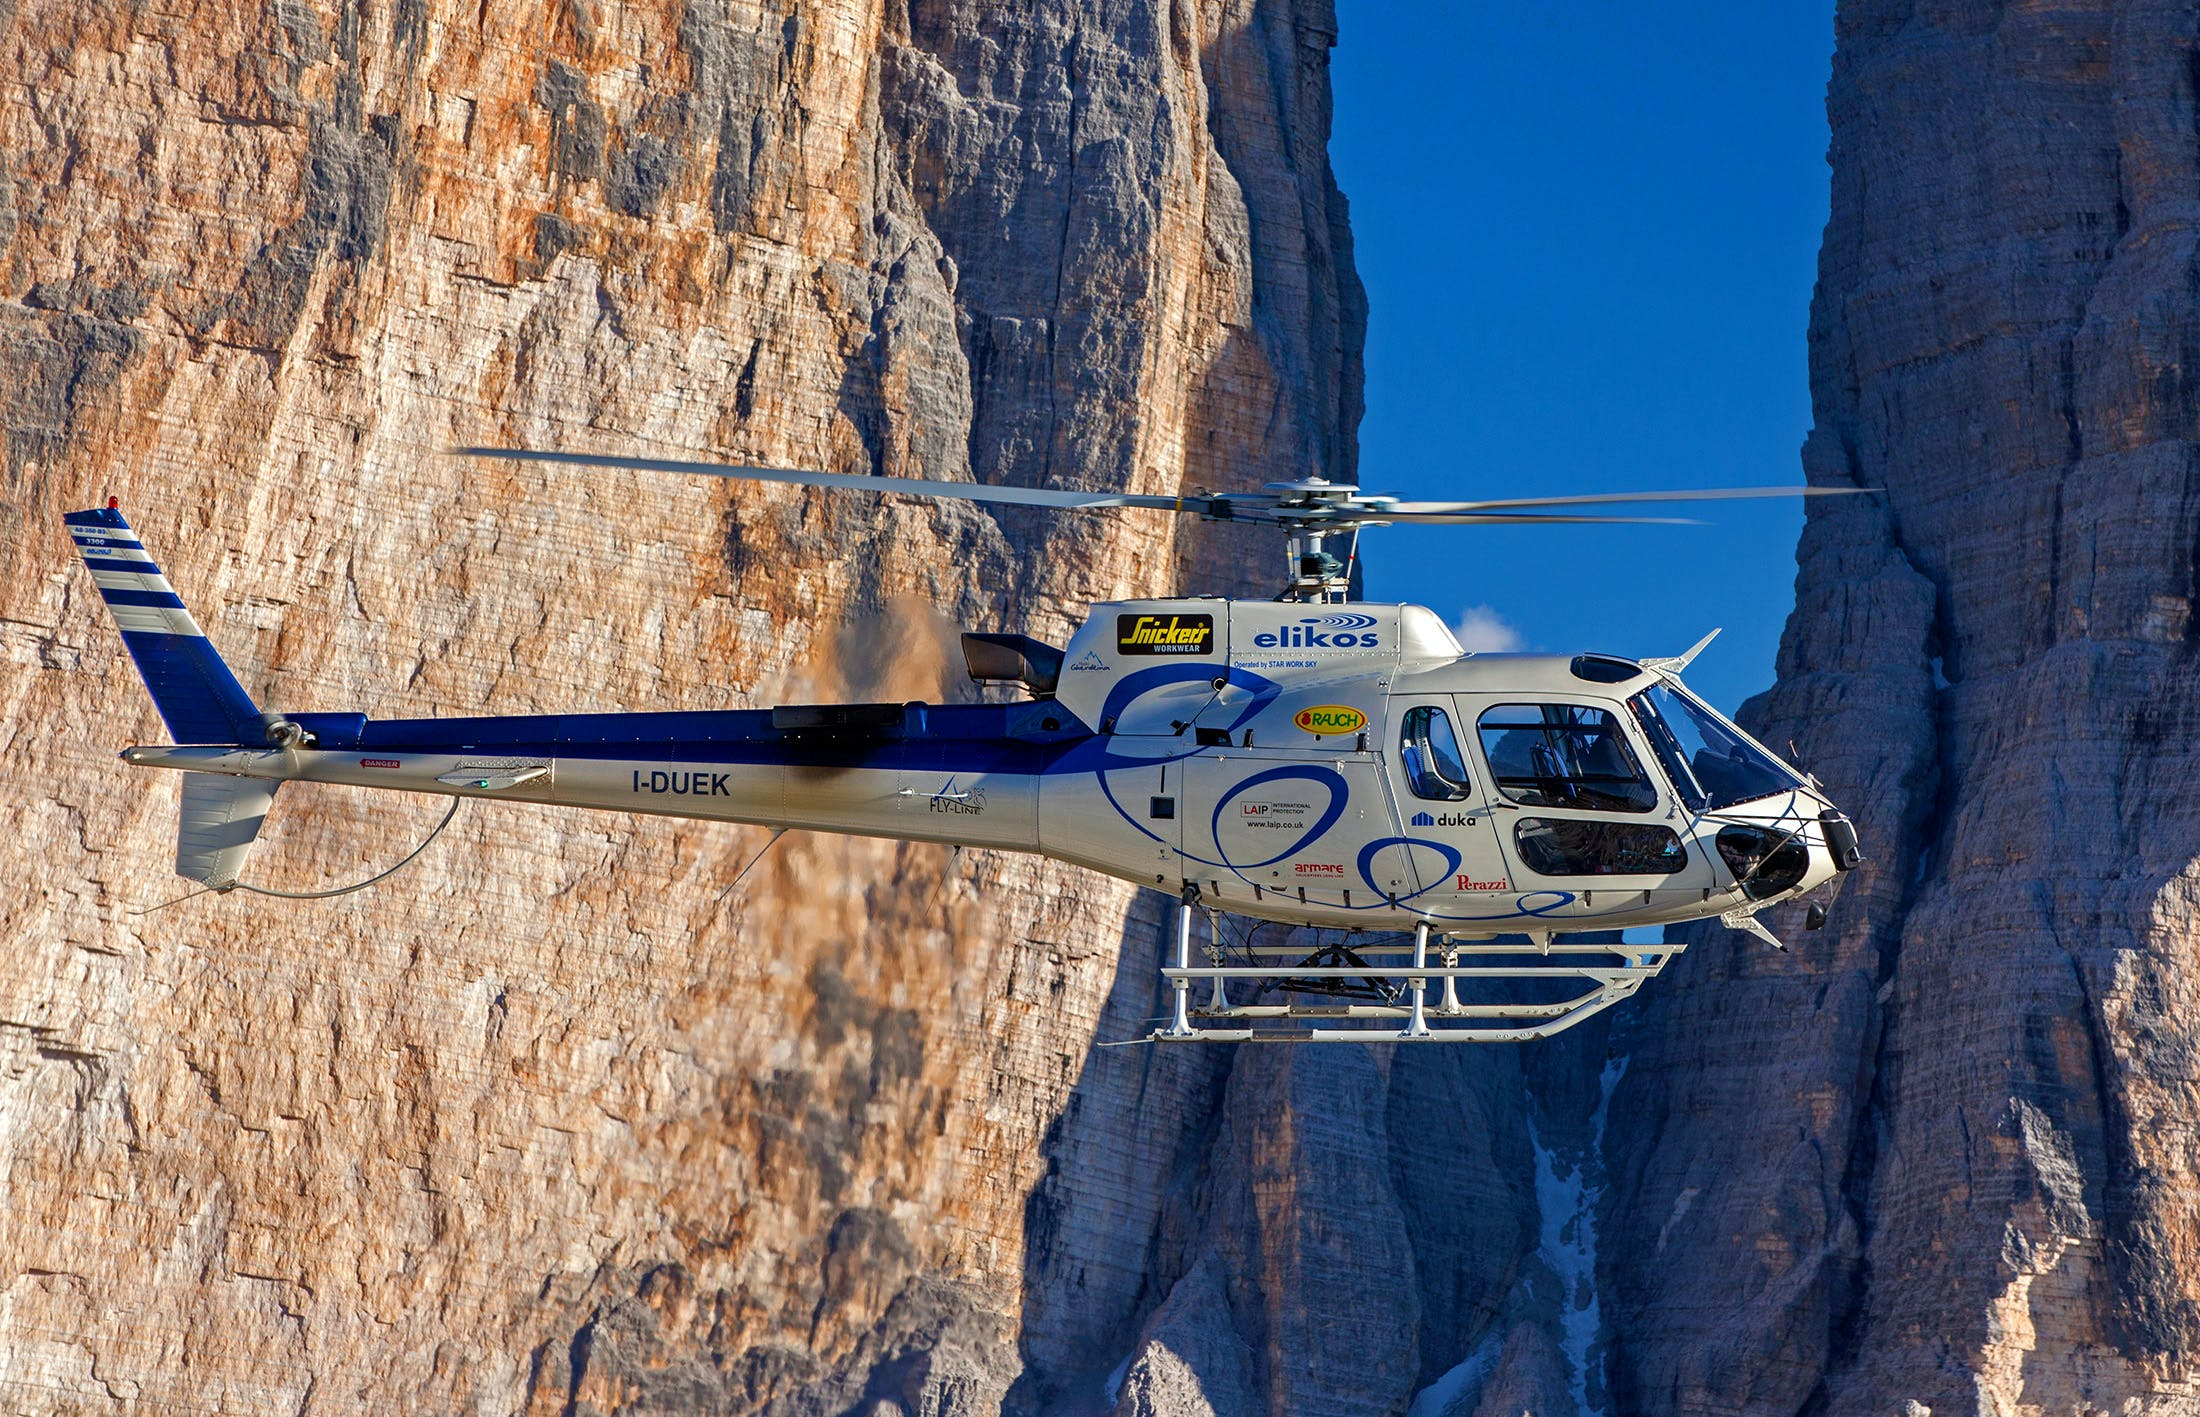 Selective Photograph of White Helicopter Near Brown Mountains